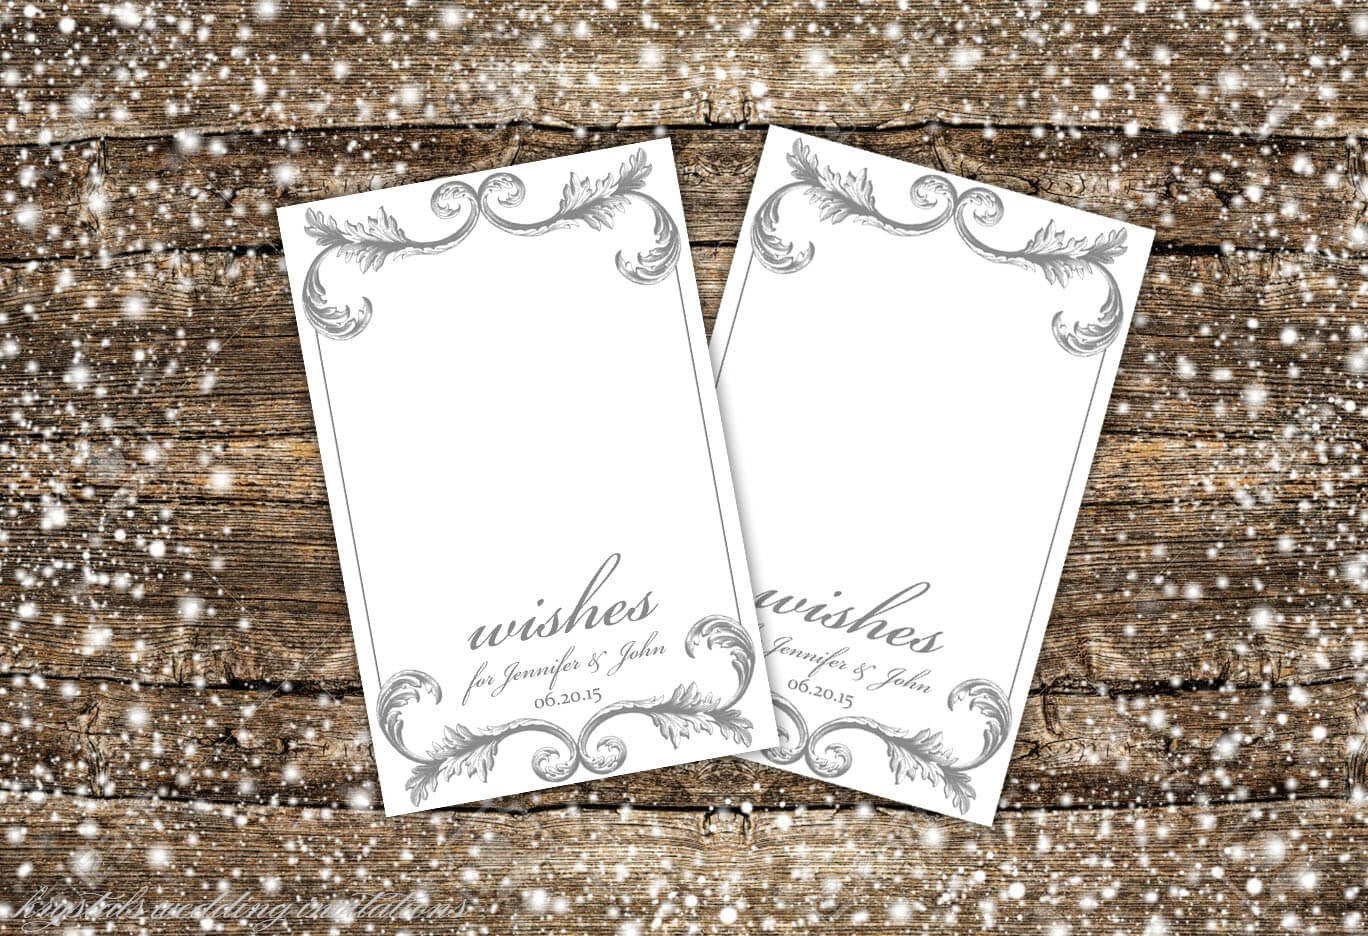 Wedding Well Wish Tags Advice Tags - Krystals Wedding Invitations